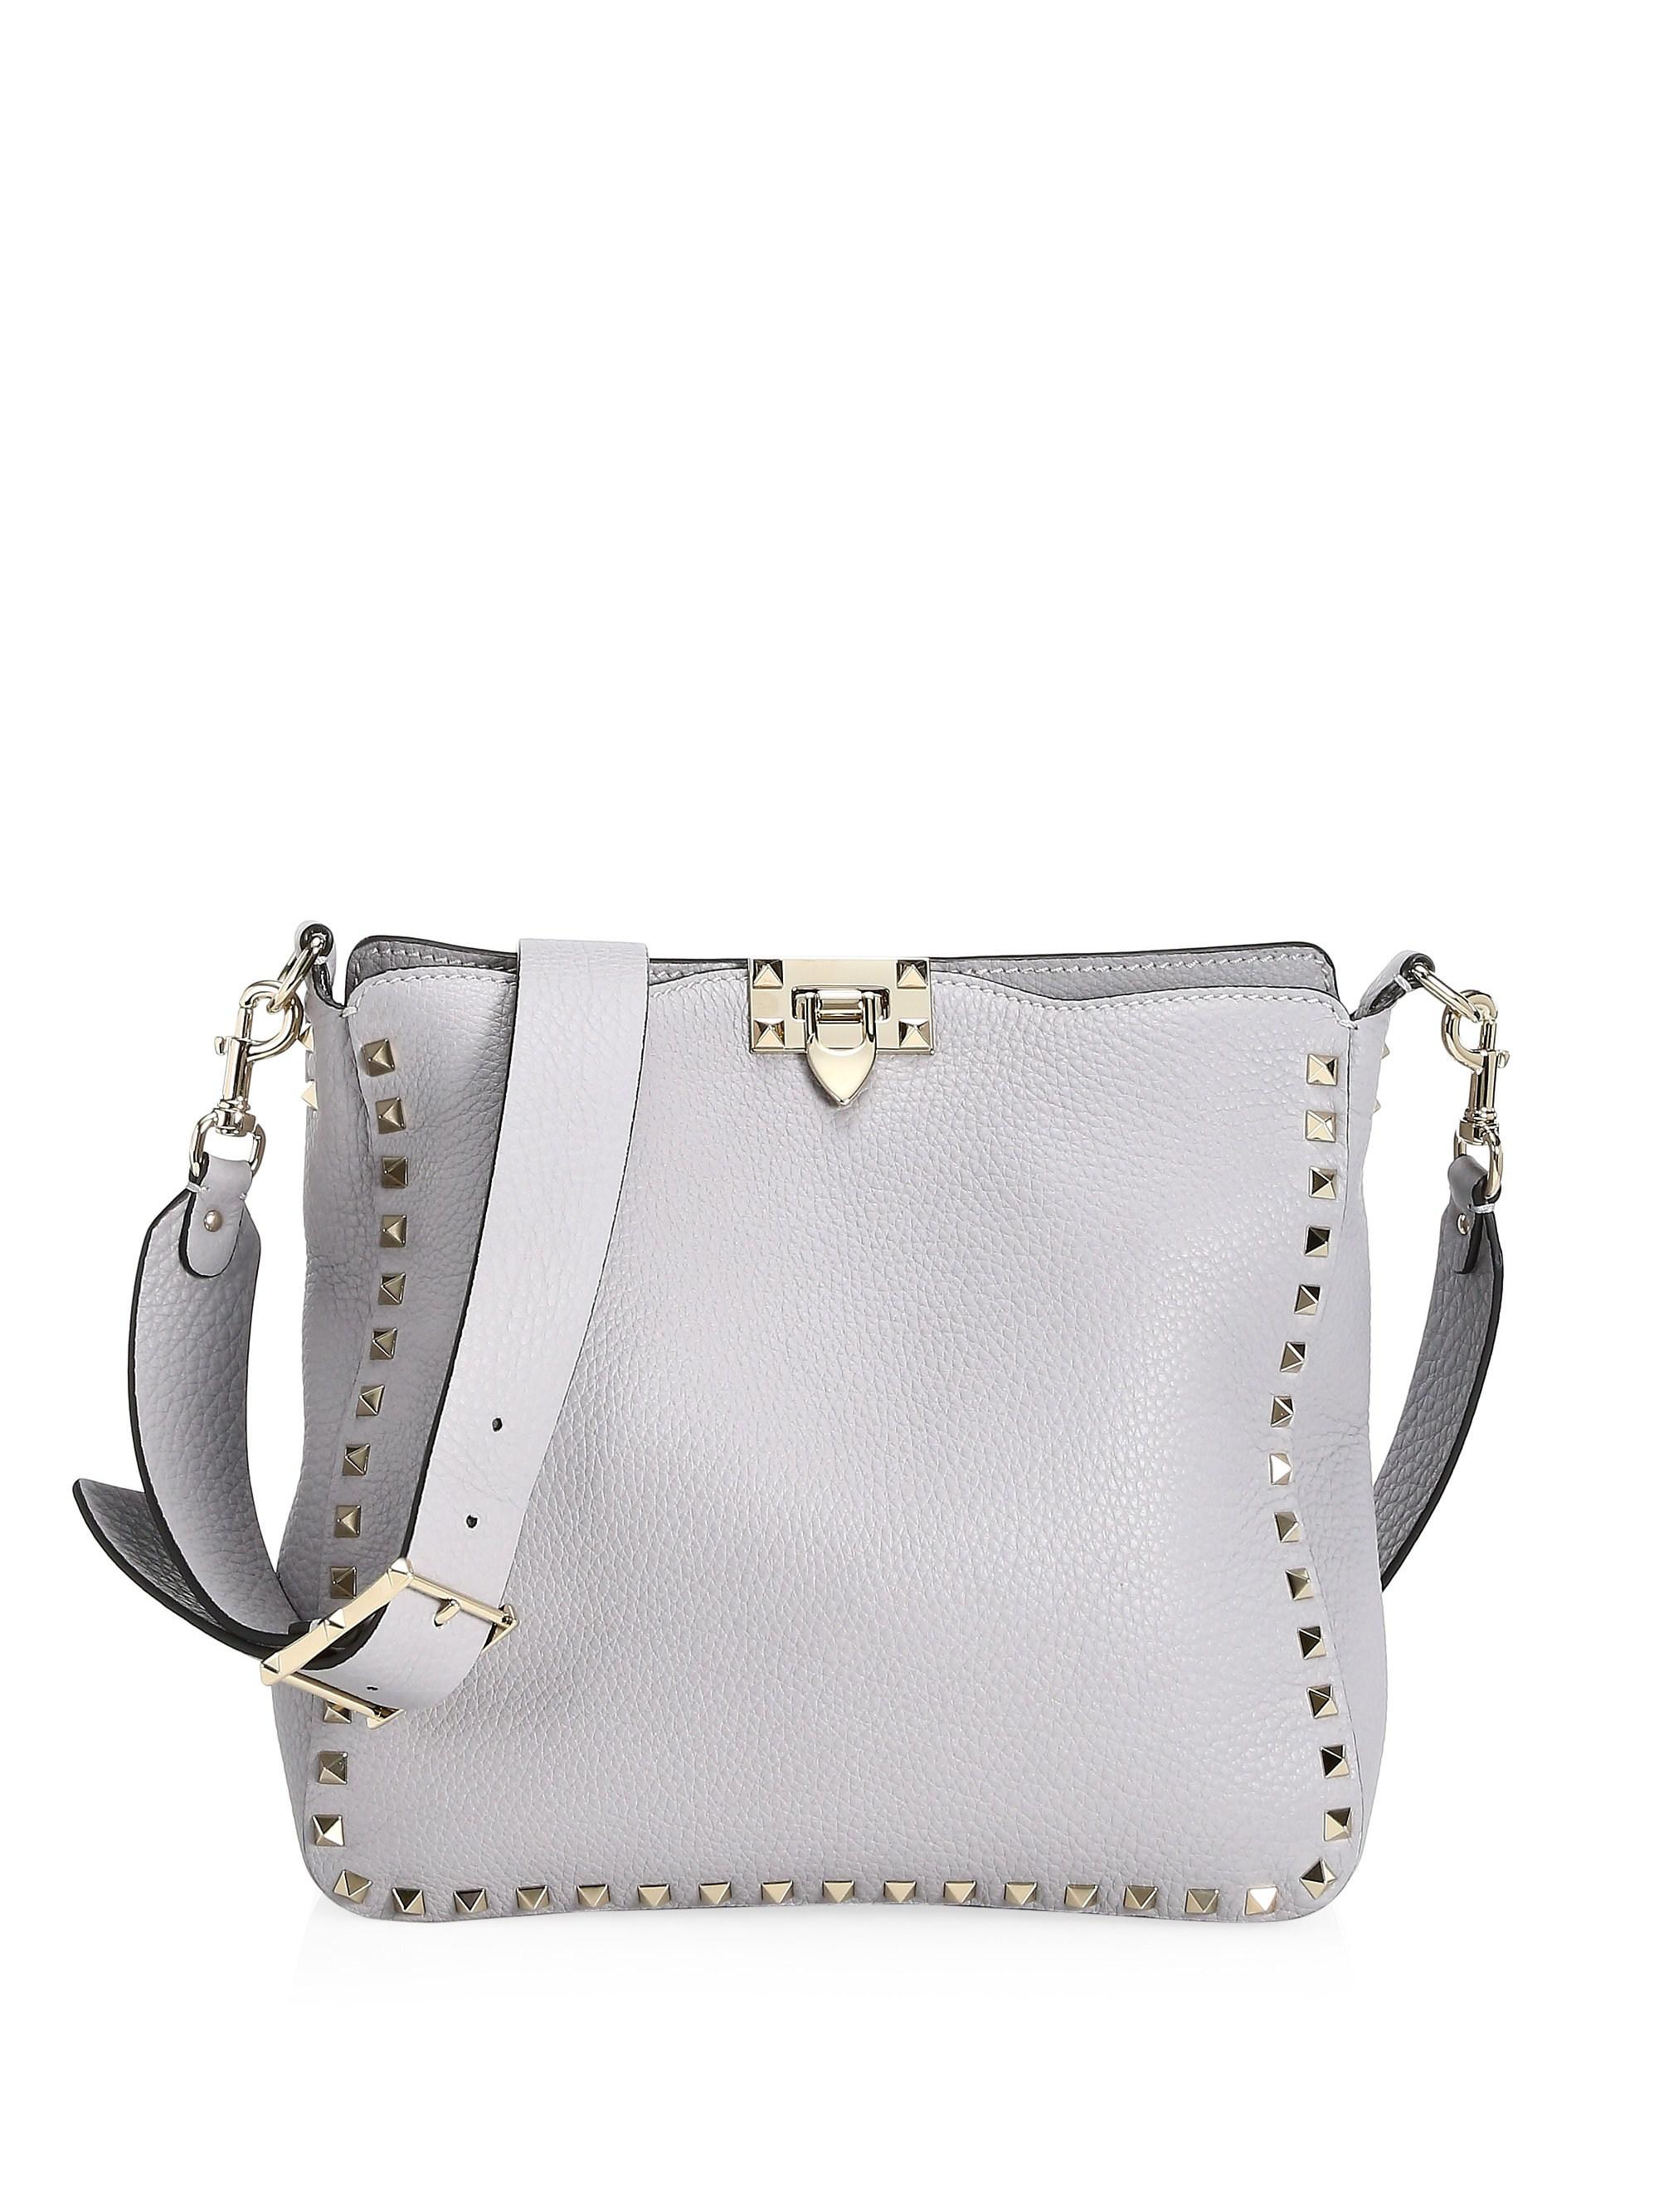 056b3cd4a7 Valentino Small Rockstud Utilitarian Shoulder Bag in Gray - Lyst